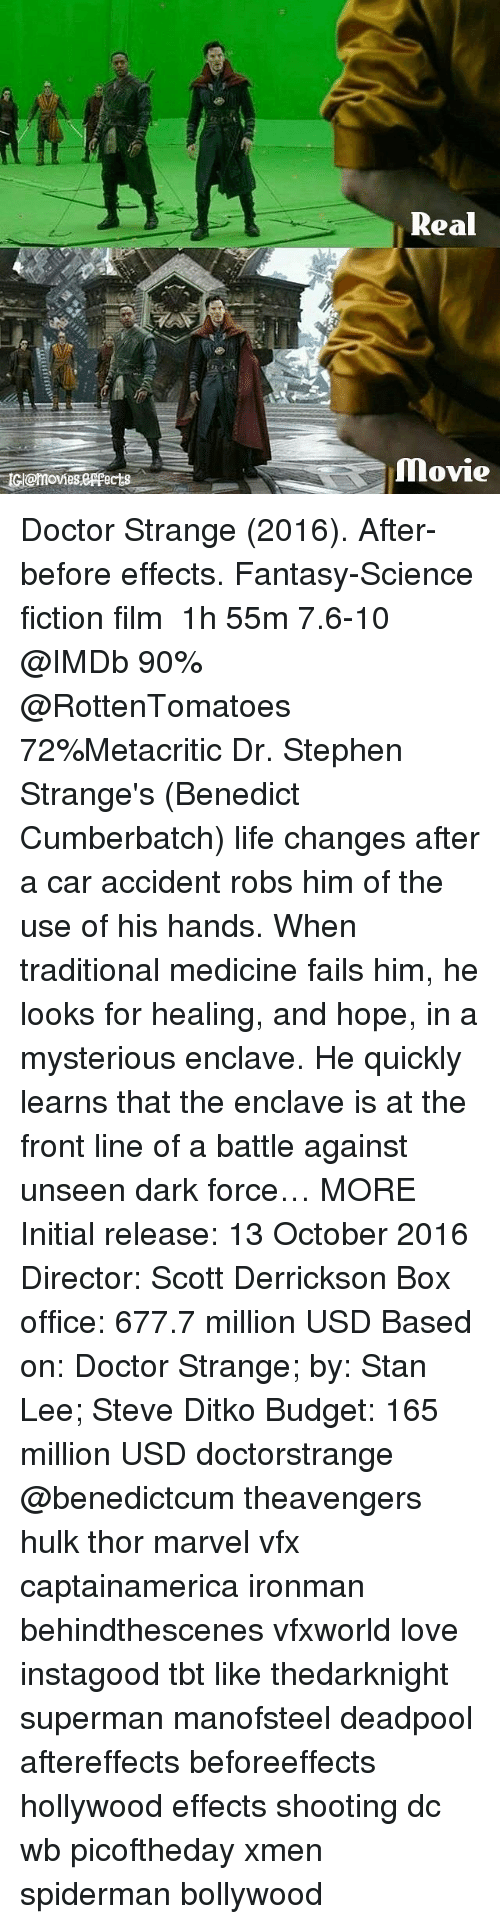 hulking: Real  tl@moviesespects Doctor Strange (2016). After-before effects. Fantasy-Science fiction film ‧ 1h 55m 7.6-10 @IMDb 90% @RottenTomatoes 72%Metacritic Dr. Stephen Strange's (Benedict Cumberbatch) life changes after a car accident robs him of the use of his hands. When traditional medicine fails him, he looks for healing, and hope, in a mysterious enclave. He quickly learns that the enclave is at the front line of a battle against unseen dark force… MORE Initial release: 13 October 2016 Director: Scott Derrickson Box office: 677.7 million USD Based on: Doctor Strange; by: Stan Lee; Steve Ditko Budget: 165 million USD doctorstrange @benedictcum theavengers hulk thor marvel vfx captainamerica ironman behindthescenes vfxworld love instagood tbt like thedarknight superman manofsteel deadpool aftereffects beforeeffects hollywood effects shooting dc wb picoftheday xmen spiderman bollywood